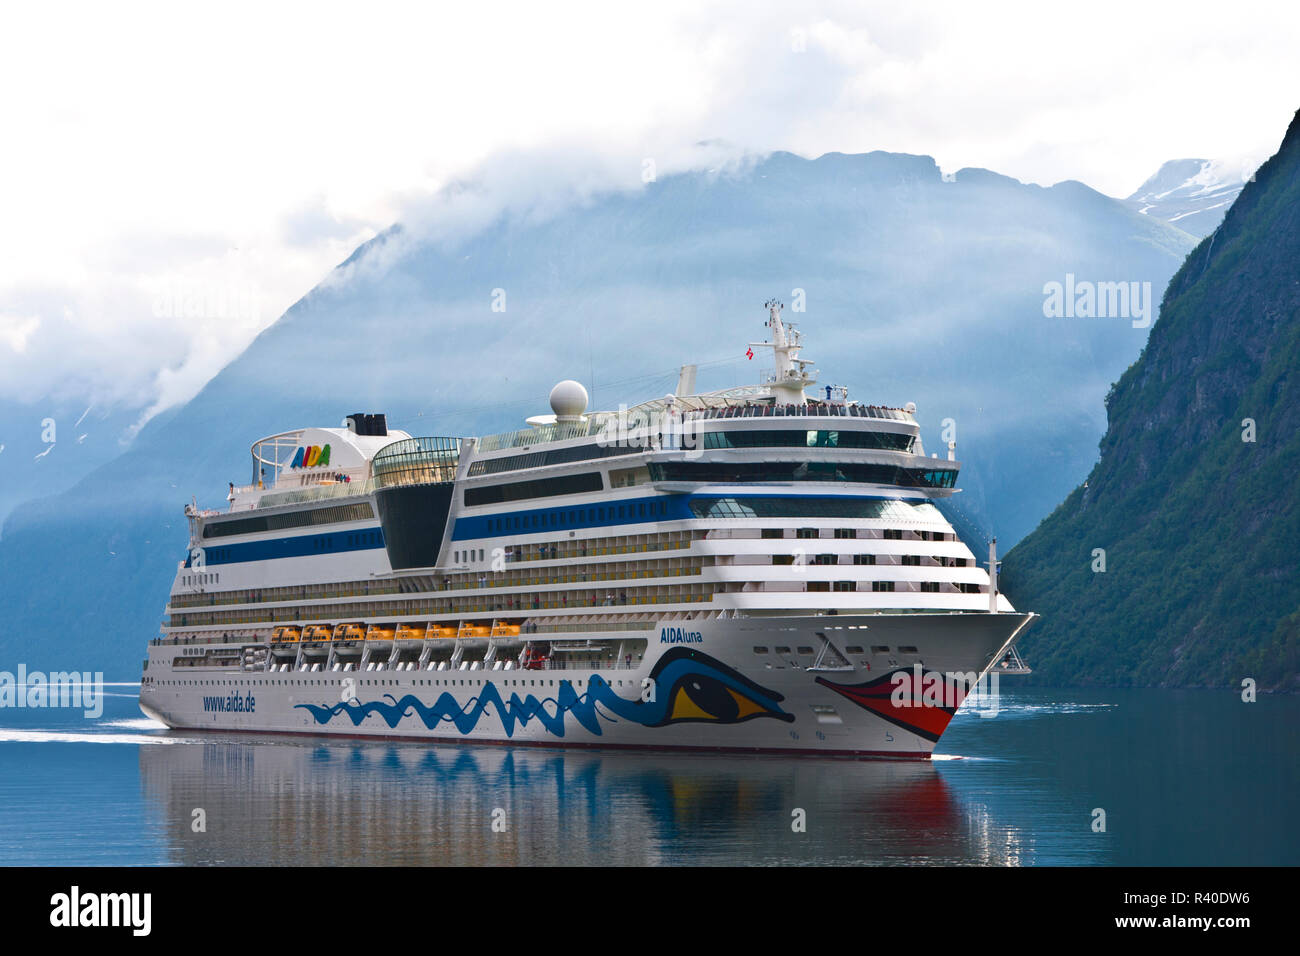 Norway, cruise liner AidaLuna at Geiranger on the Geirangerfjord, - Stock Image